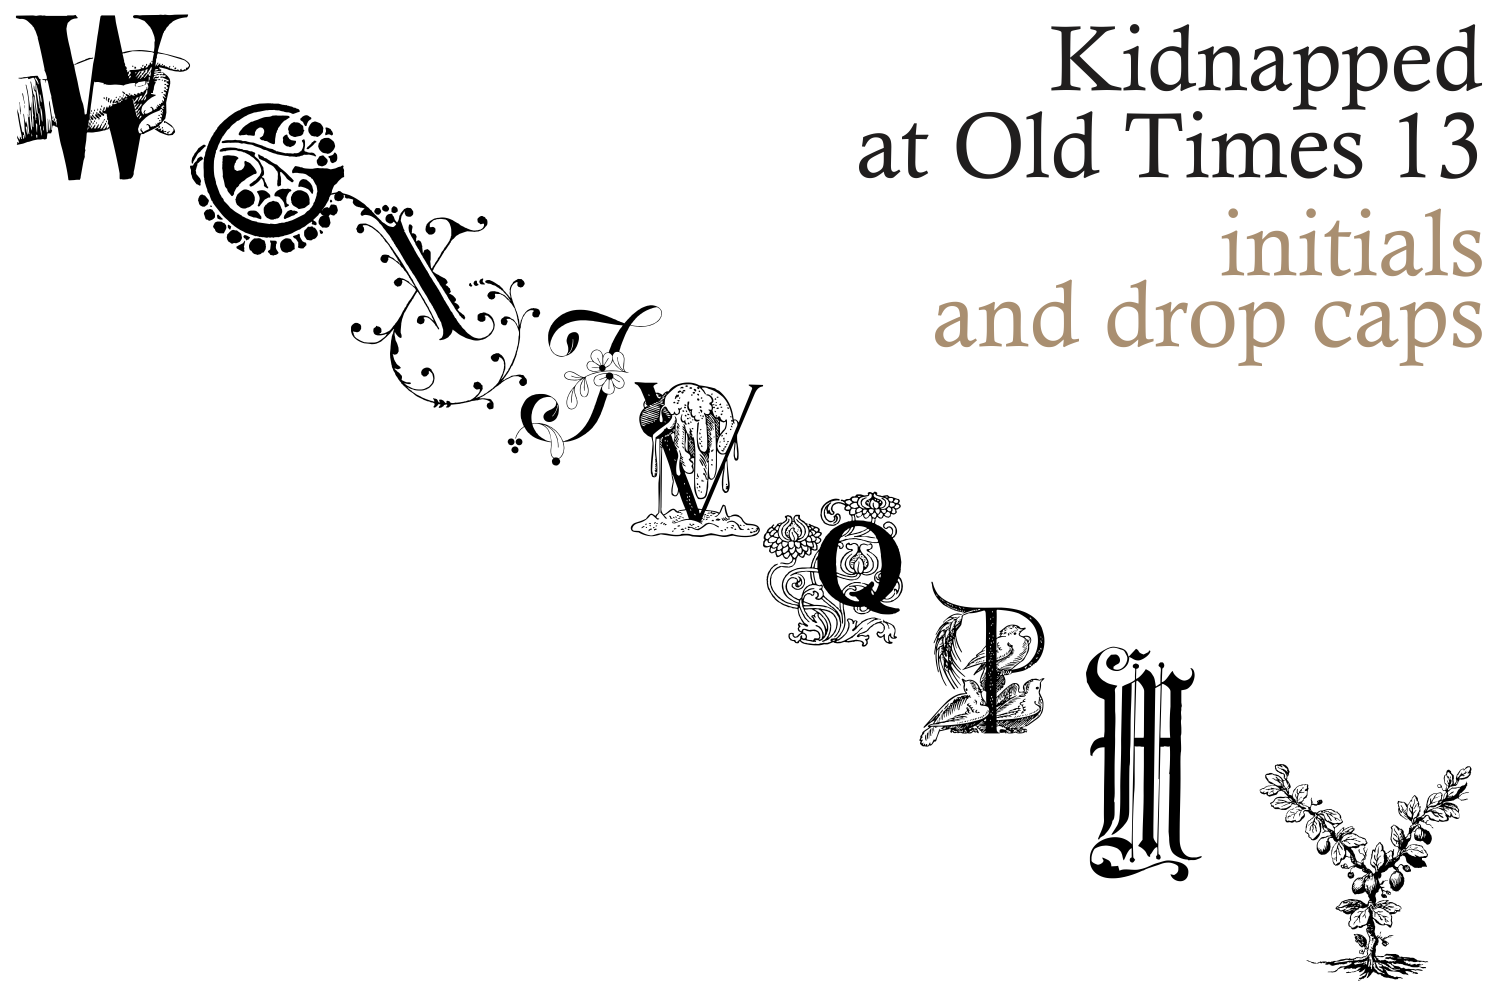 Kidnapped at Old Times 13 example image 1